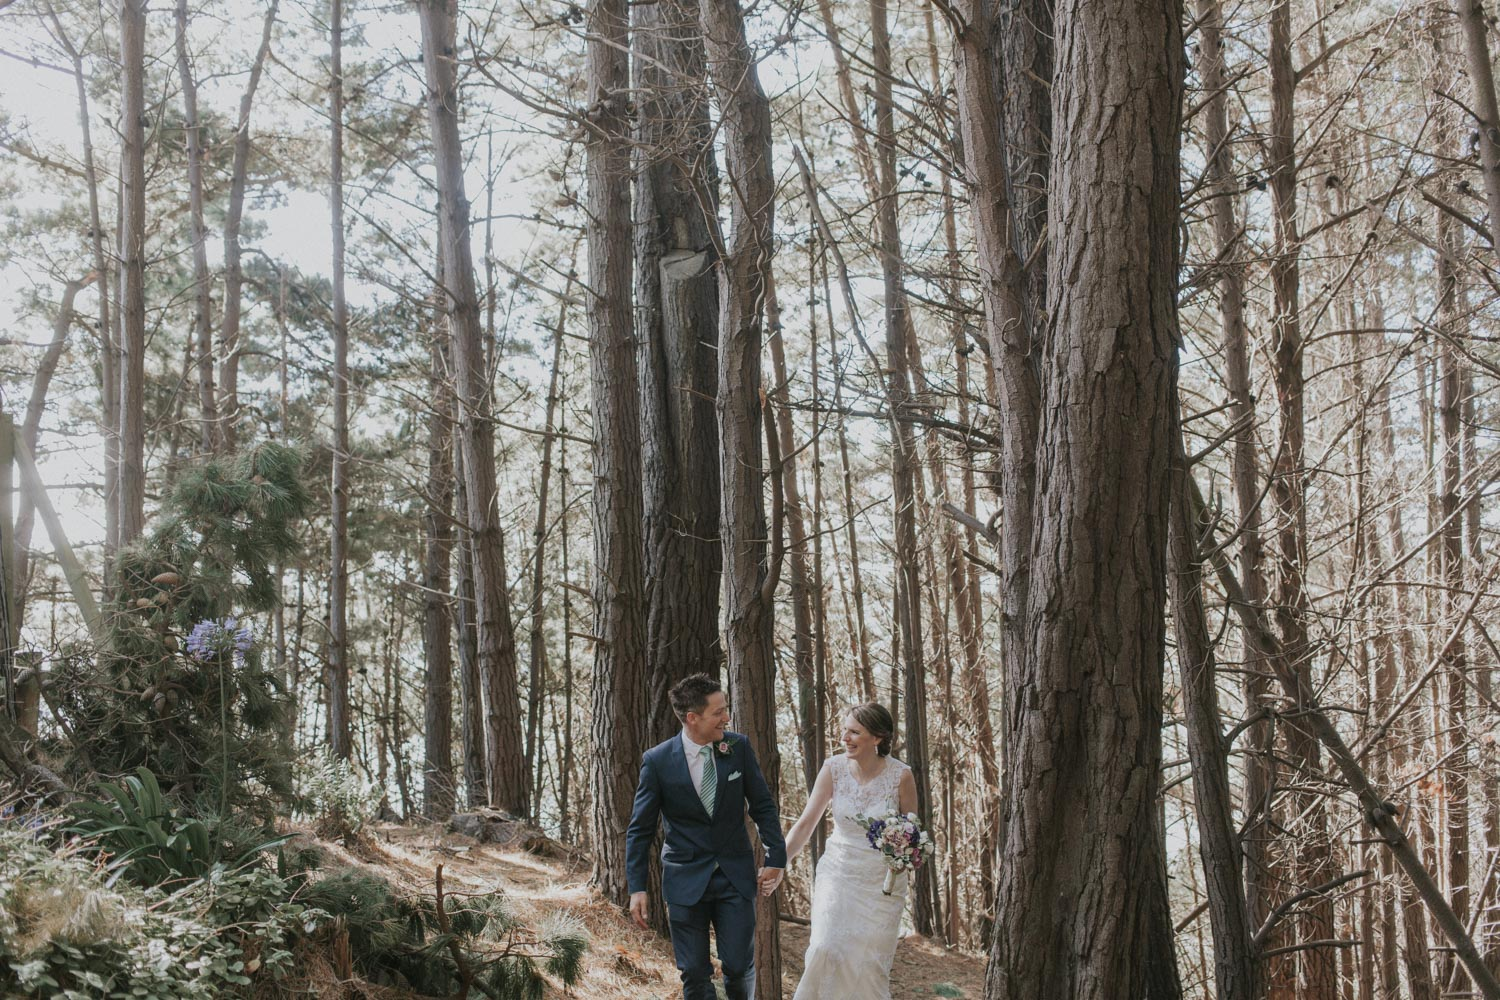 Newly weds walking through forest holding hands